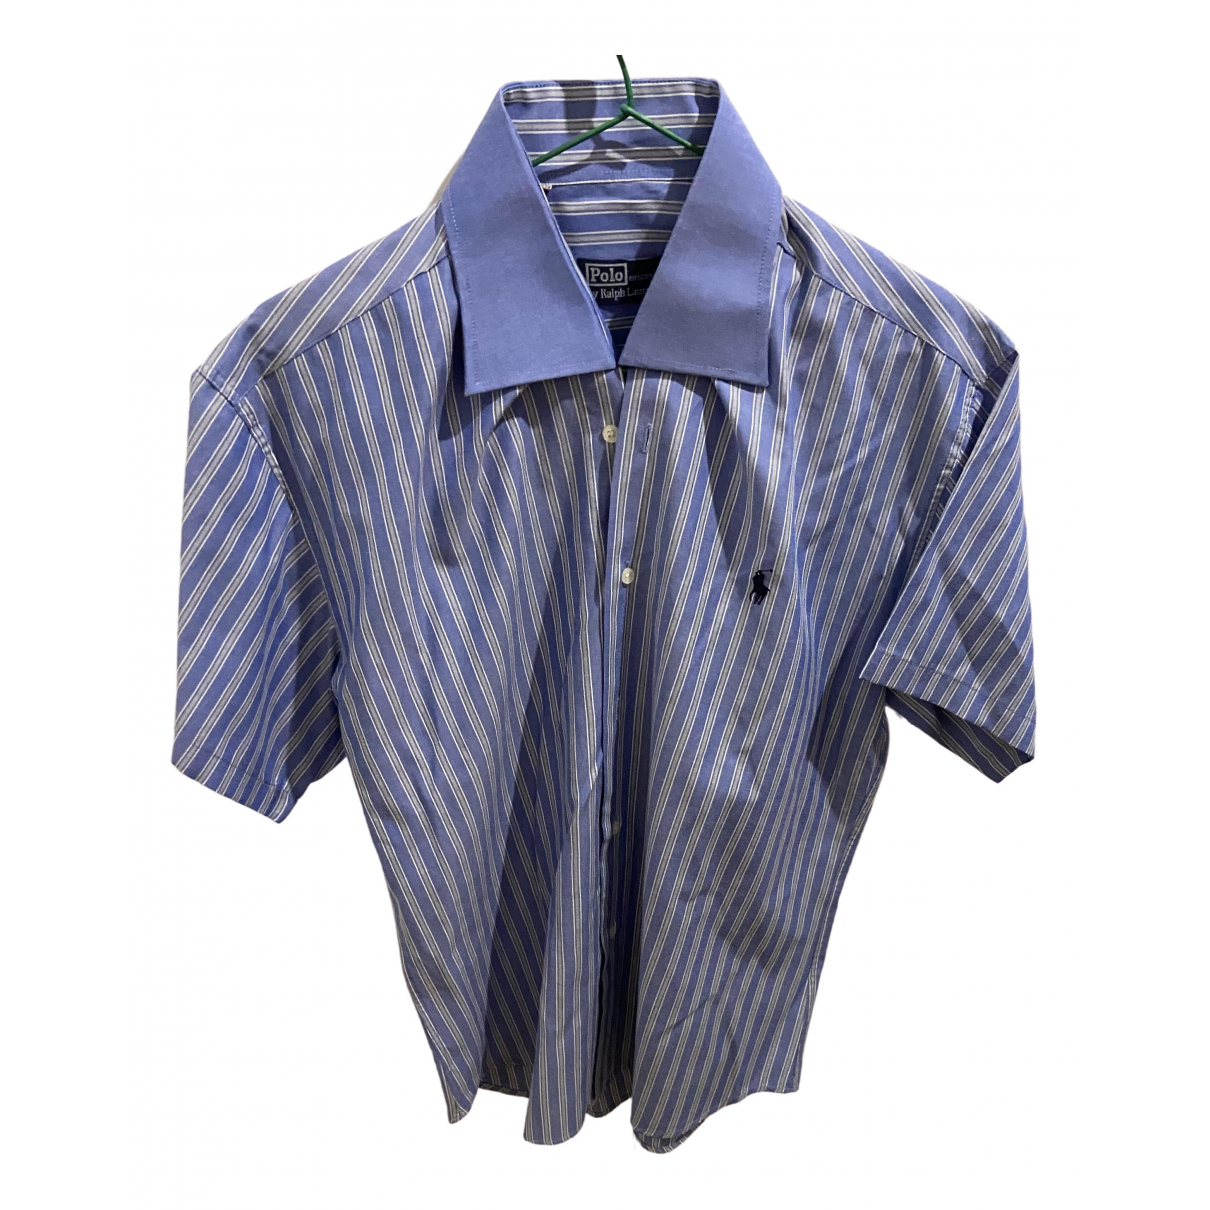 Polo Ralph Lauren \N Blue Cotton Shirts for Men XXL International